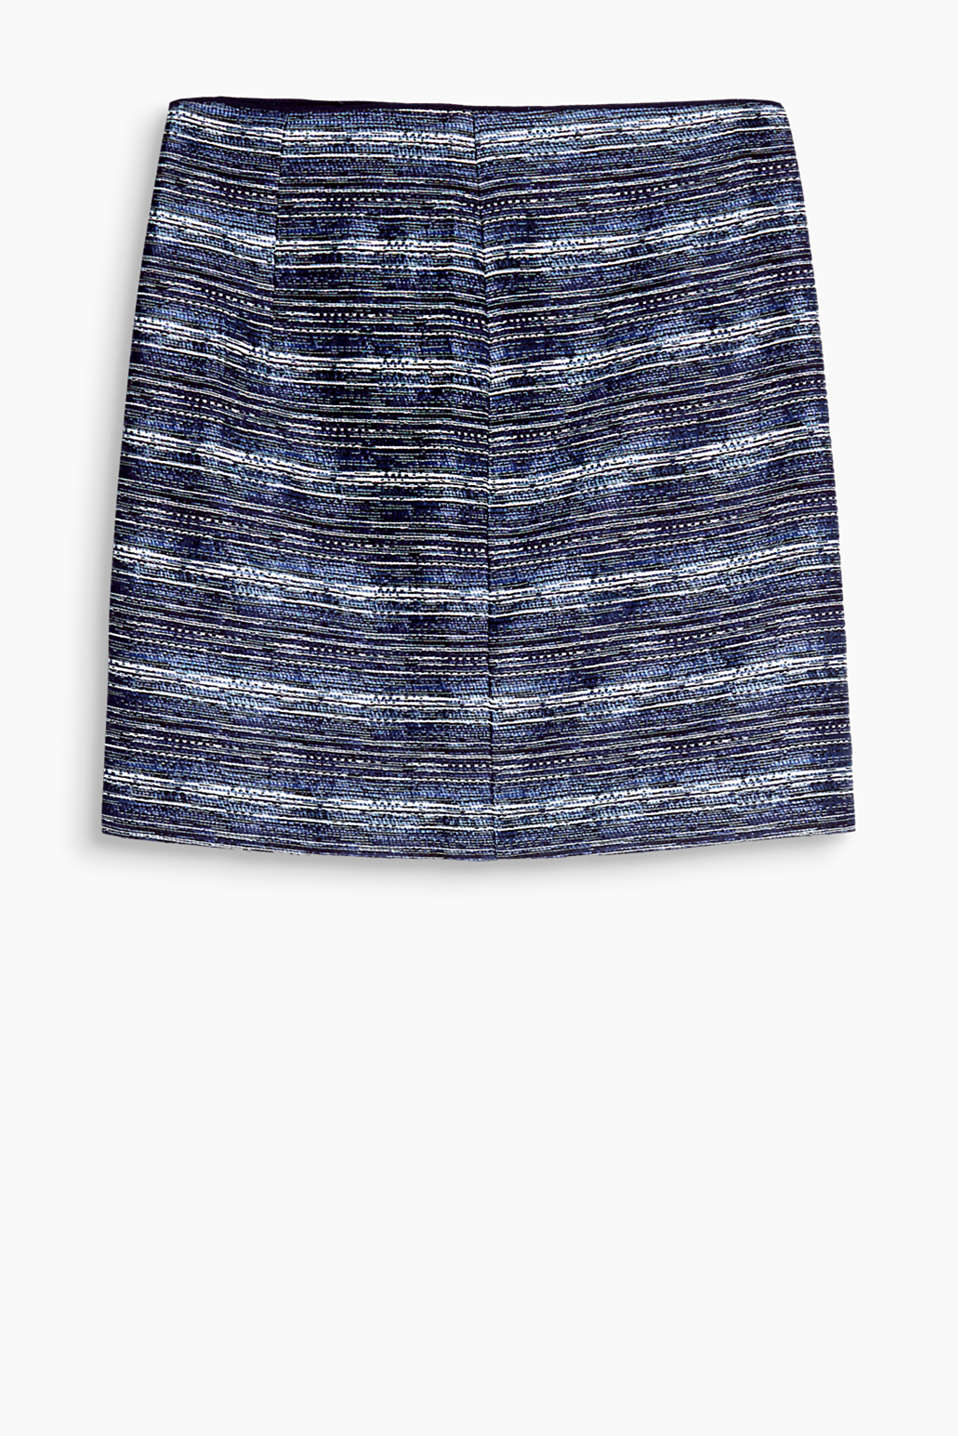 Skirt with a fine melange texture